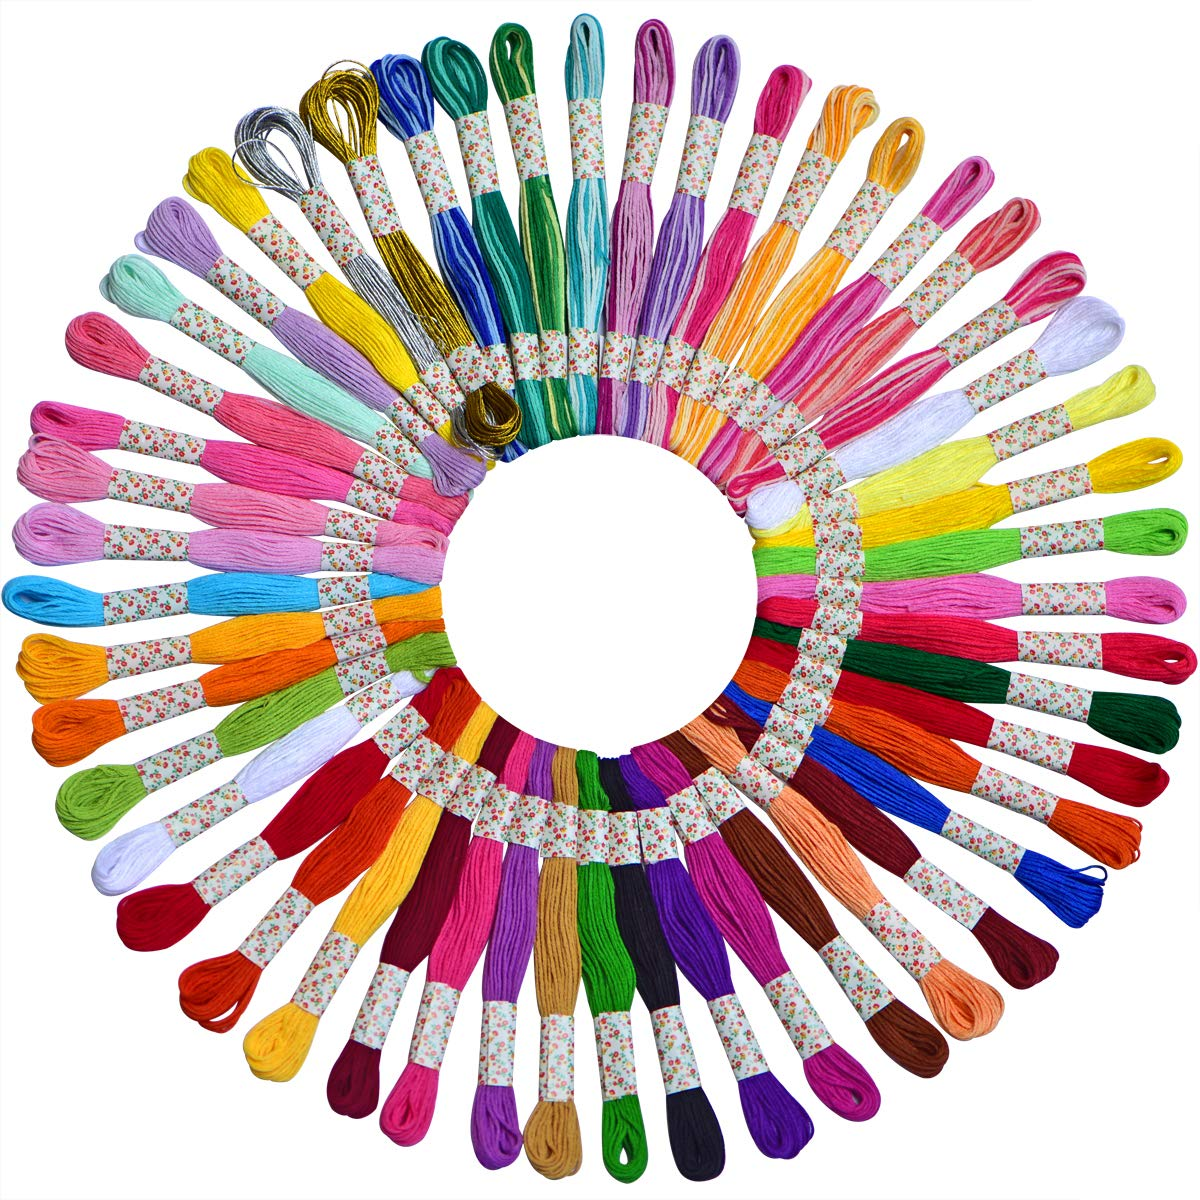 LE PAON 48 Pack Embroidery Floss Cross Stitch Thread 100%Long-StapleCotton Friendship Bracelet Craft Strings Contains12 Skeins Variegated Embroidery Floss and 2skeins Metallic Embroidery Floss cq